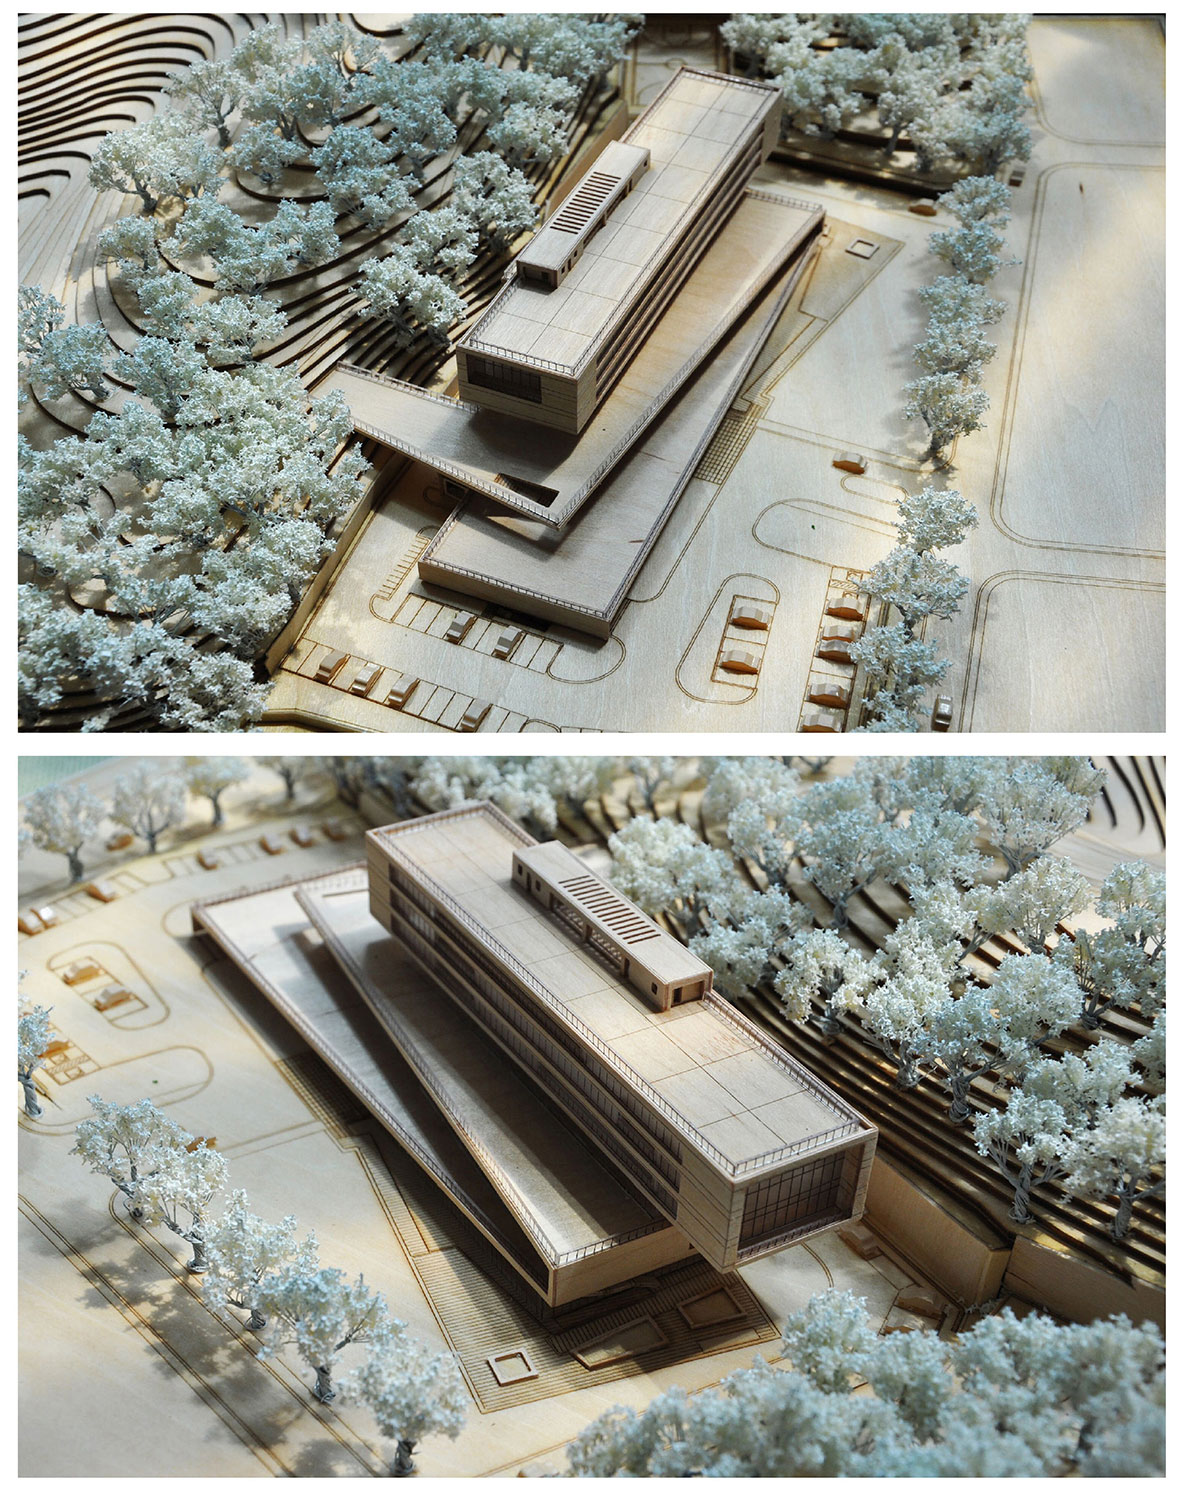 Model the Architectural Design and Research Institute of Zhejiang University Co., Ltd}